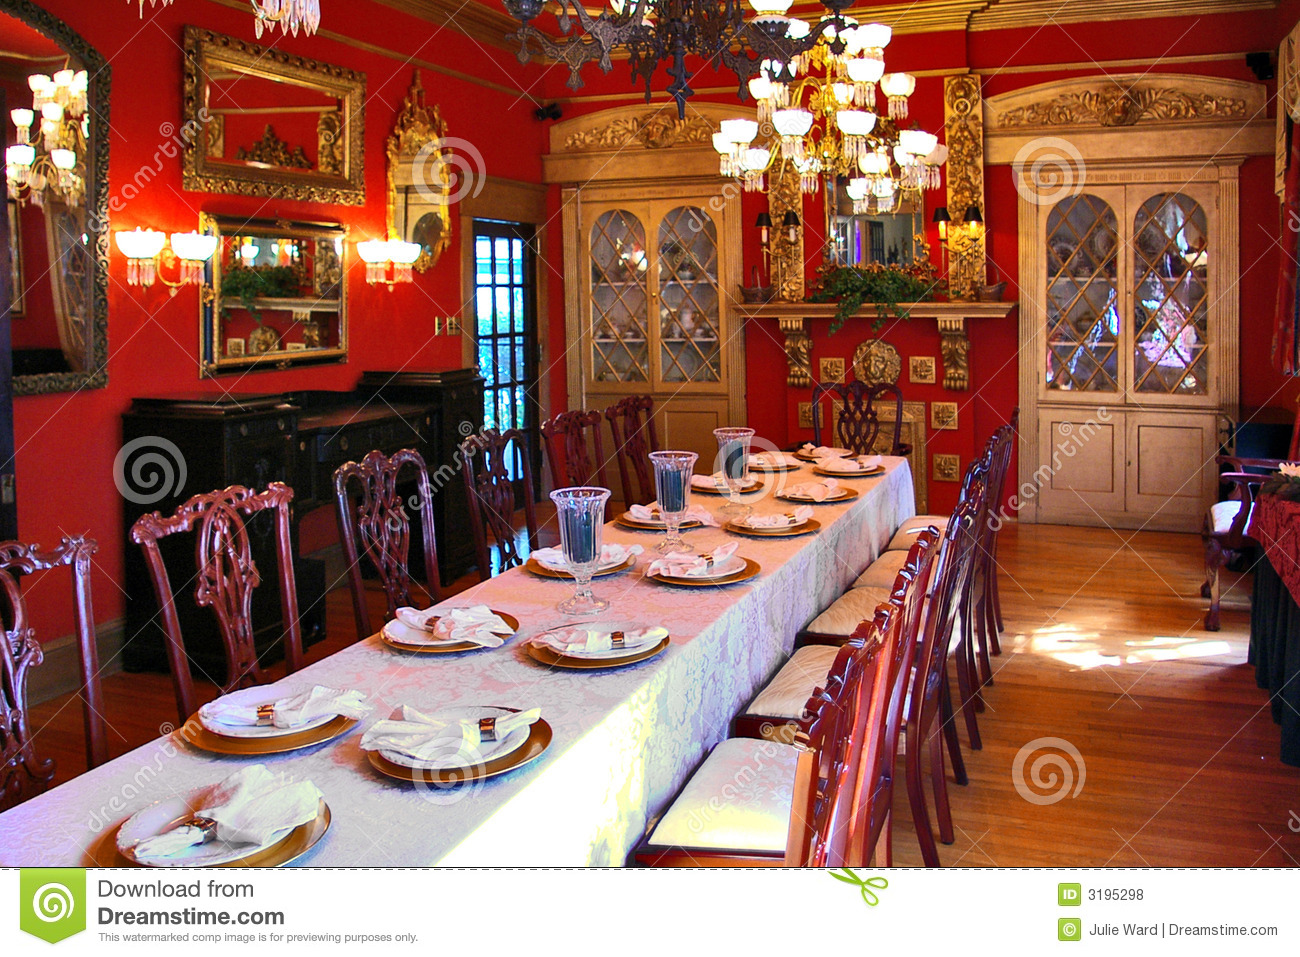 s dining chair coleman camp victorian banquet stock photo. image of victorian, wedding - 3195298